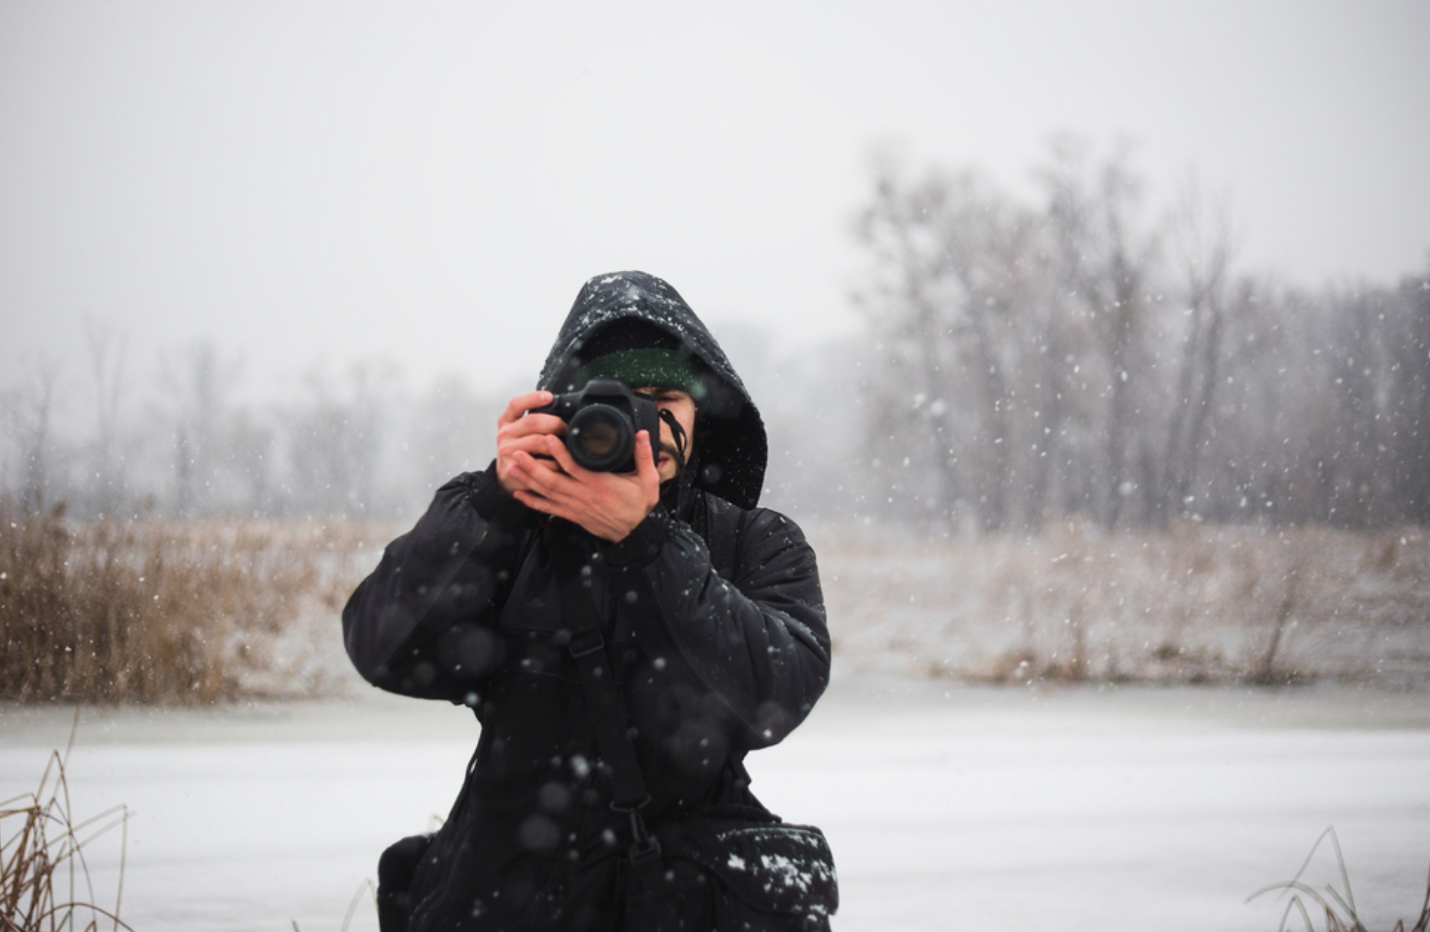 A picture containing outdoor, sky, person, snow  Description automatically generated